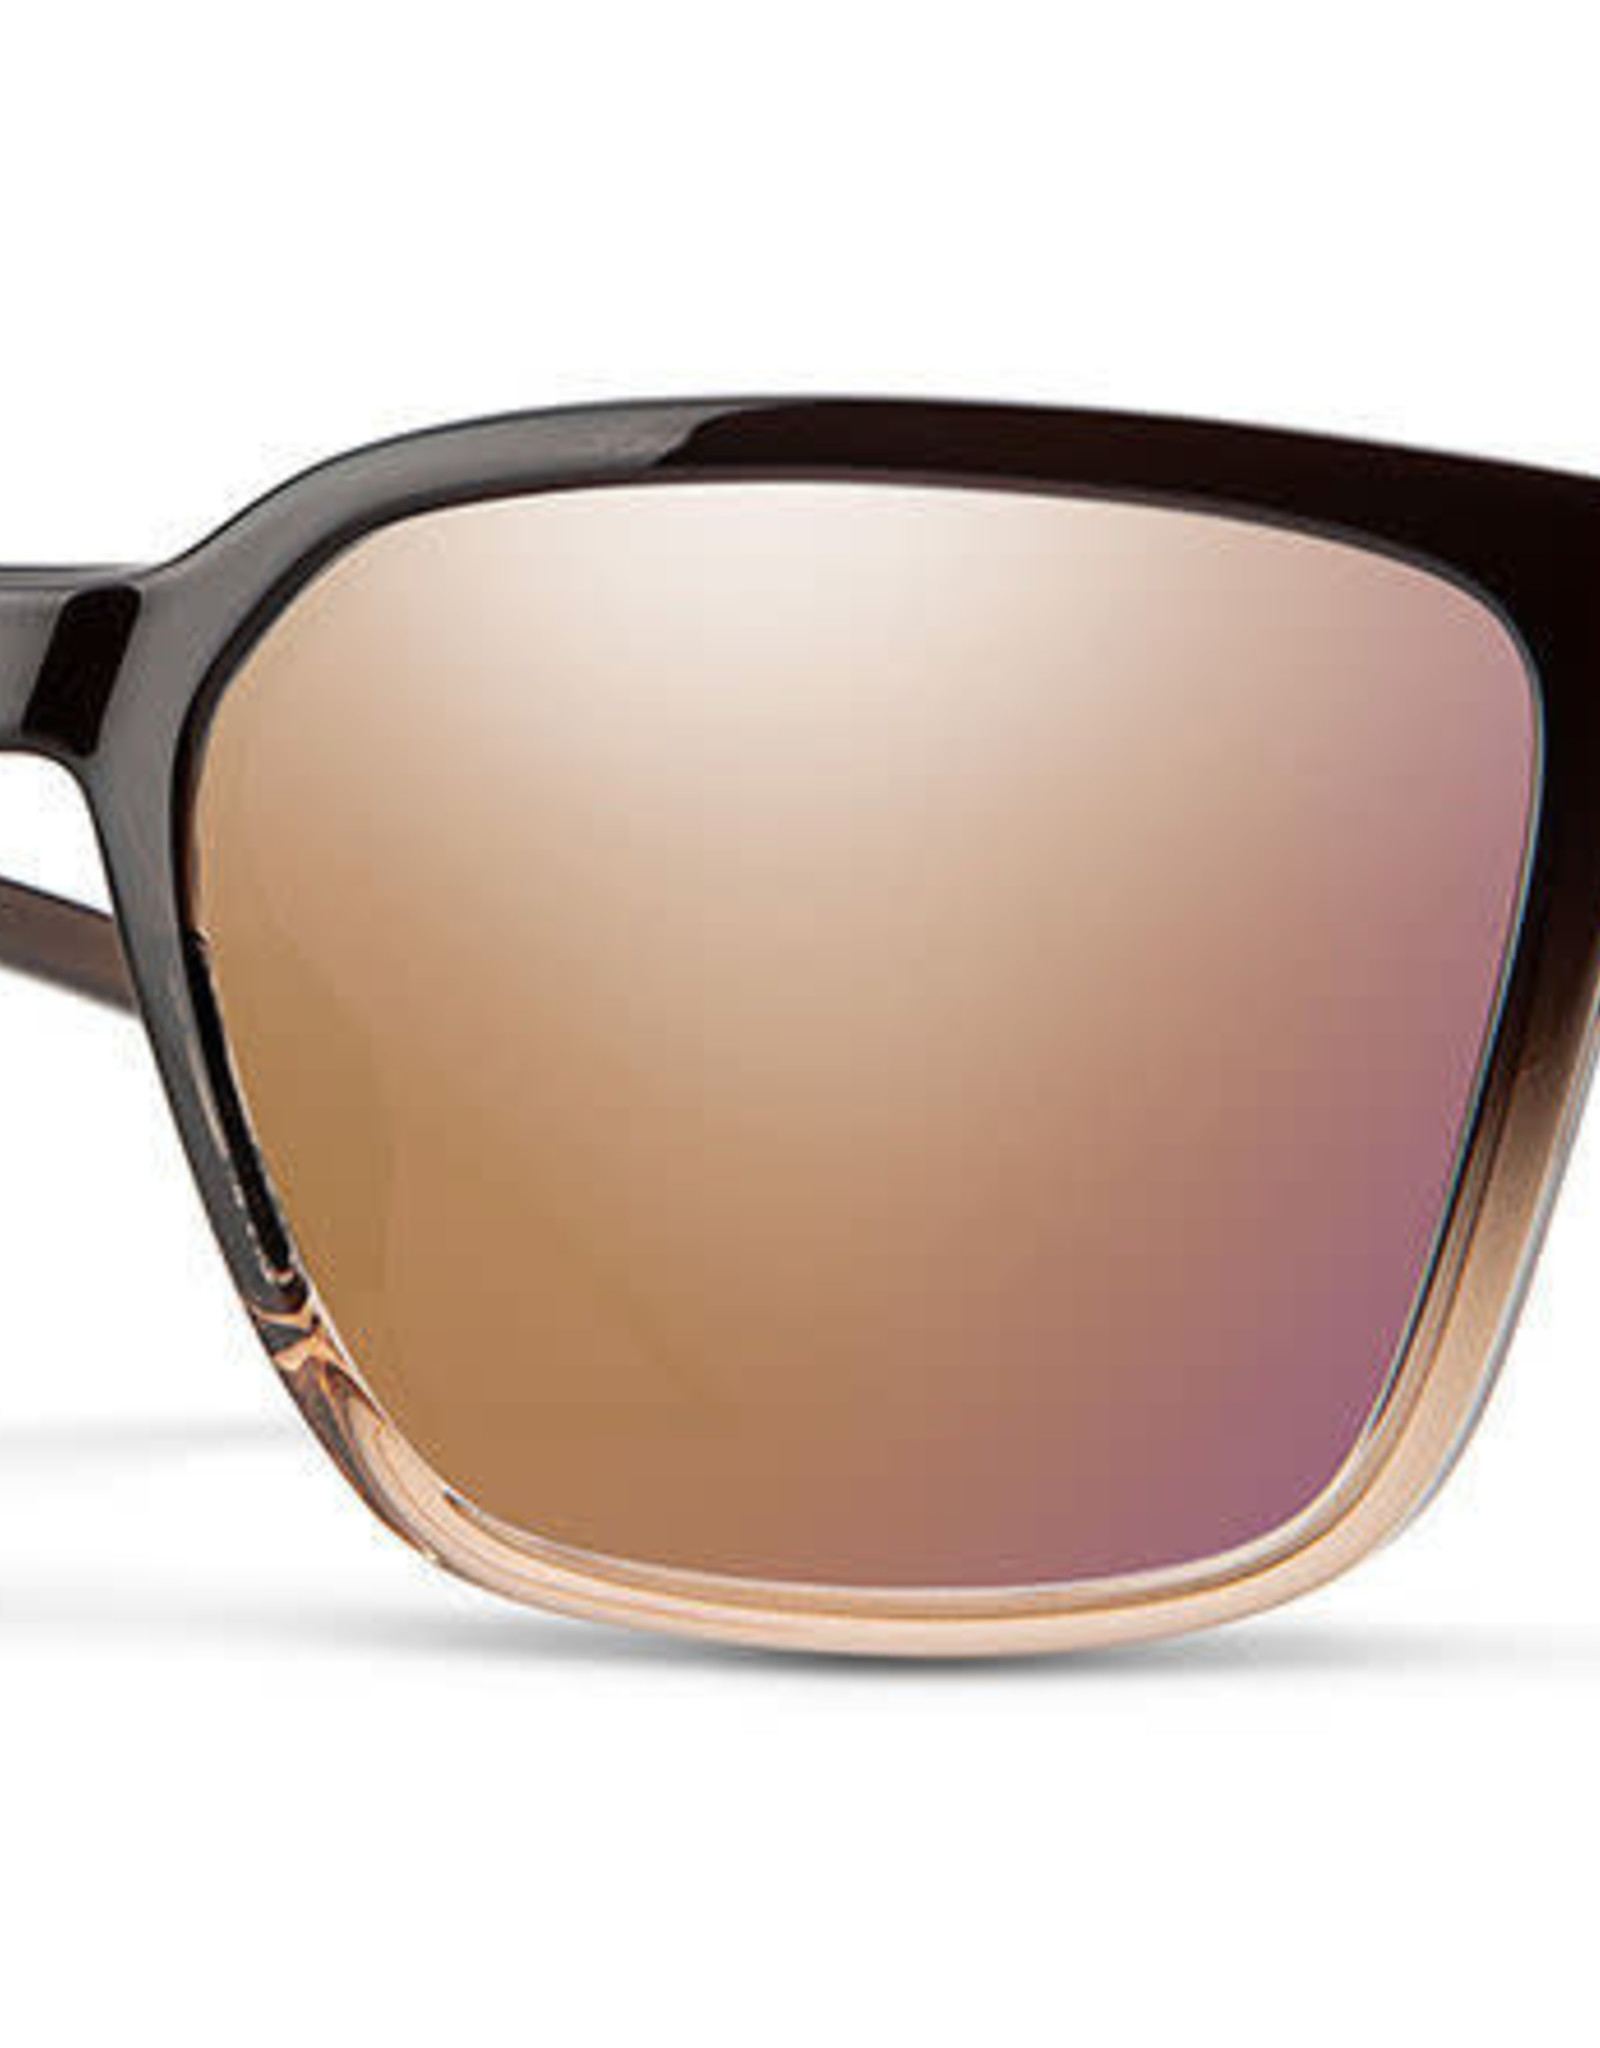 Smith Optics Smith - SHOUTOUT - Ombre Fade w/ CP Rose Gold Mirr